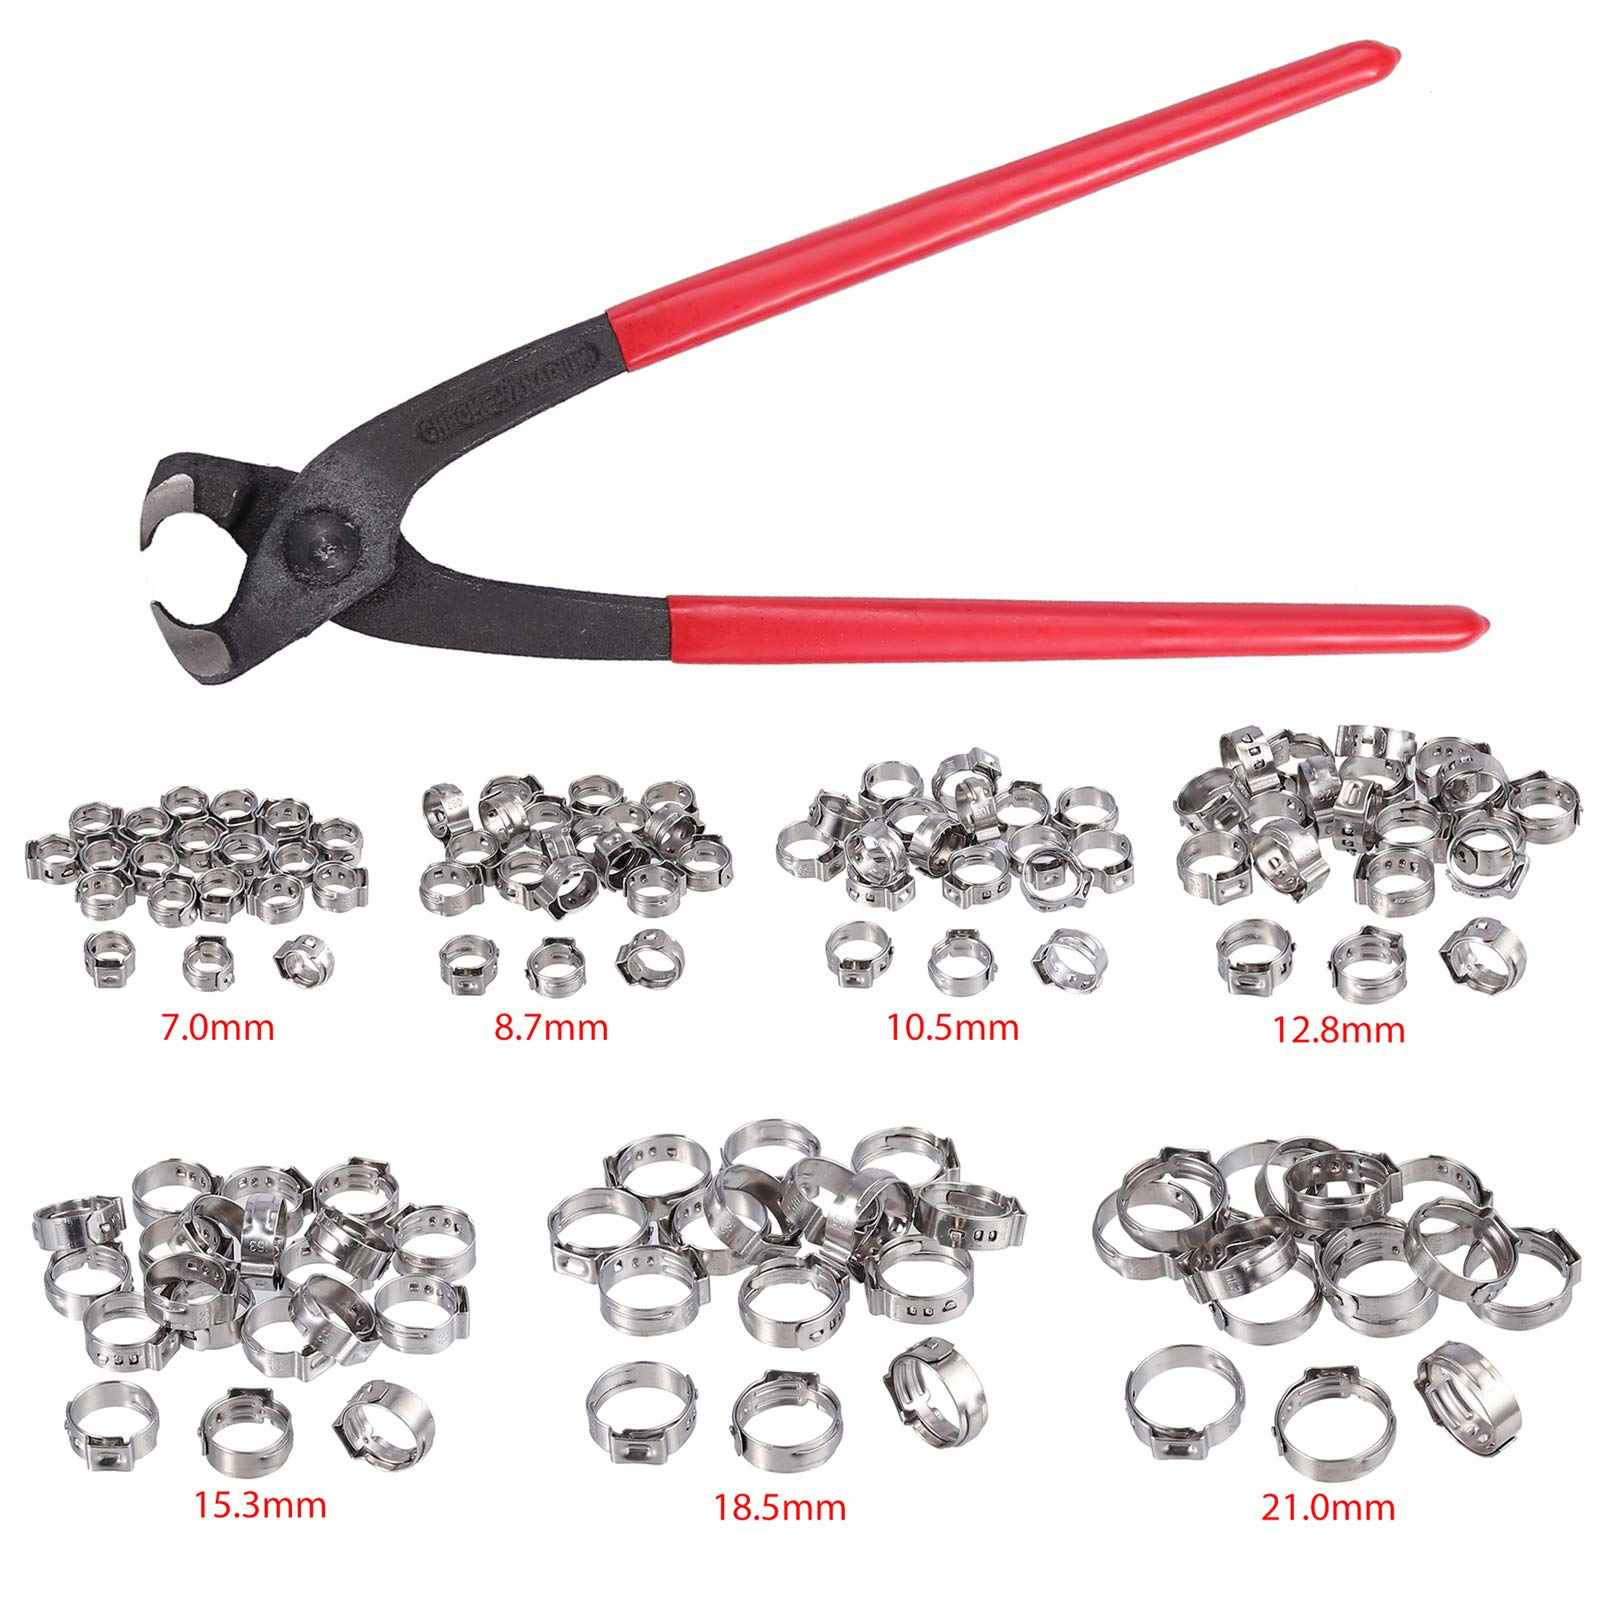 Proster Single Ear Stepless Hose Clamps 130PCS 6-21mm 304 Stainless Steel Cinch Clamp Rings Single Ear Hose Clamp Crimper Tool Kit by Proster